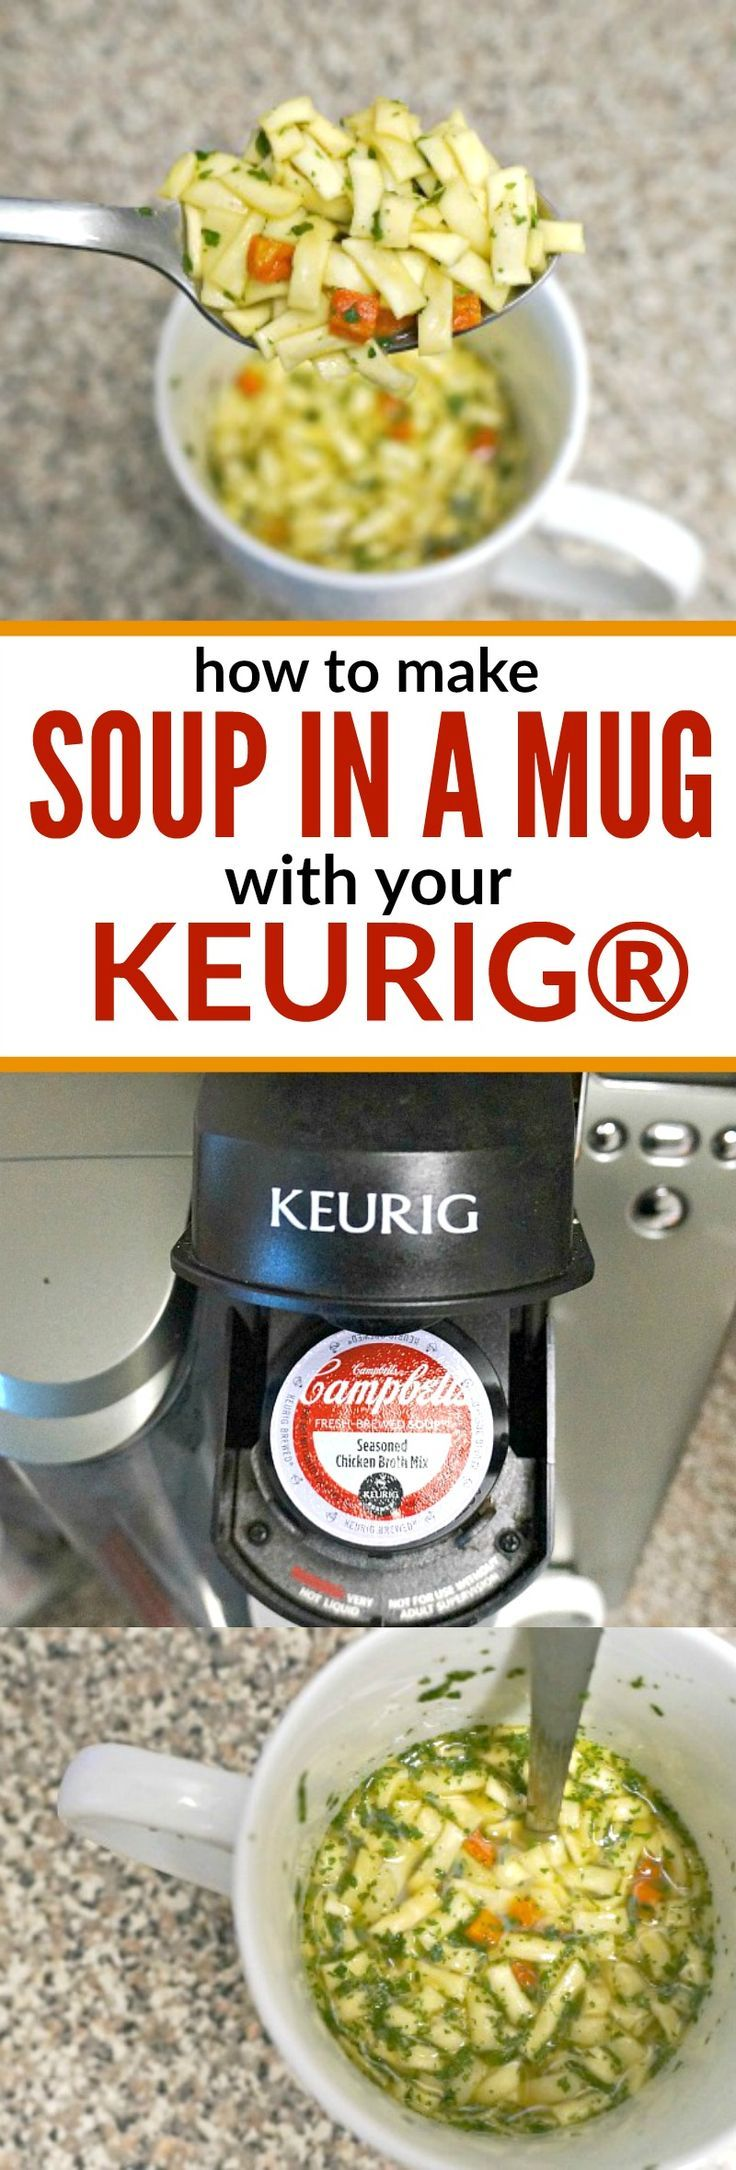 How to Make Soup In A Mug with Your Keurig®️️ Brewer woth @Campbells Fresh-Brewed soups®️️! #ad